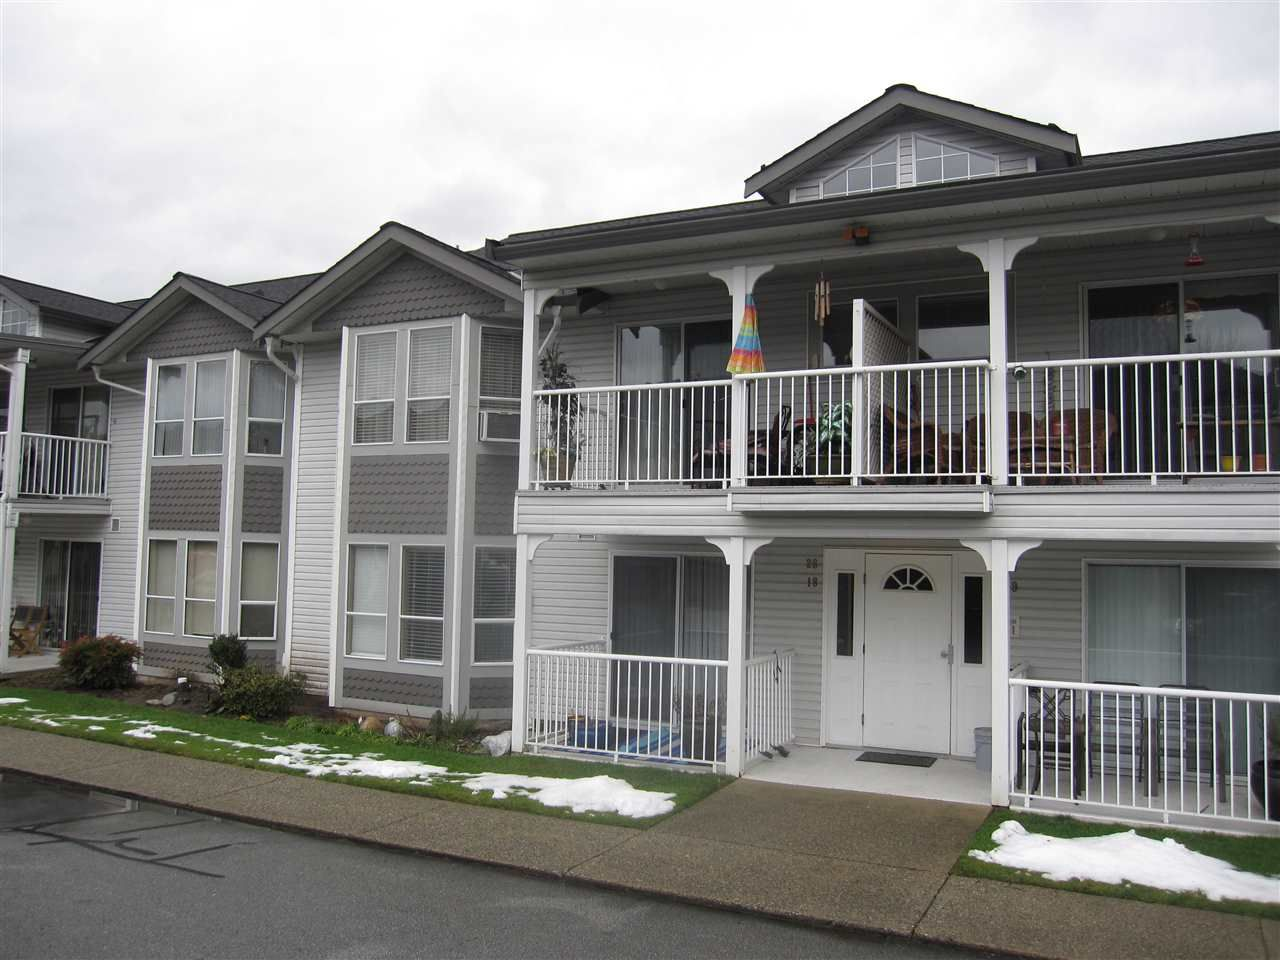 """Photo 1: Photos: 26 12296 224 Street in Maple Ridge: East Central Townhouse for sale in """"The Colonial"""" : MLS®# R2430767"""